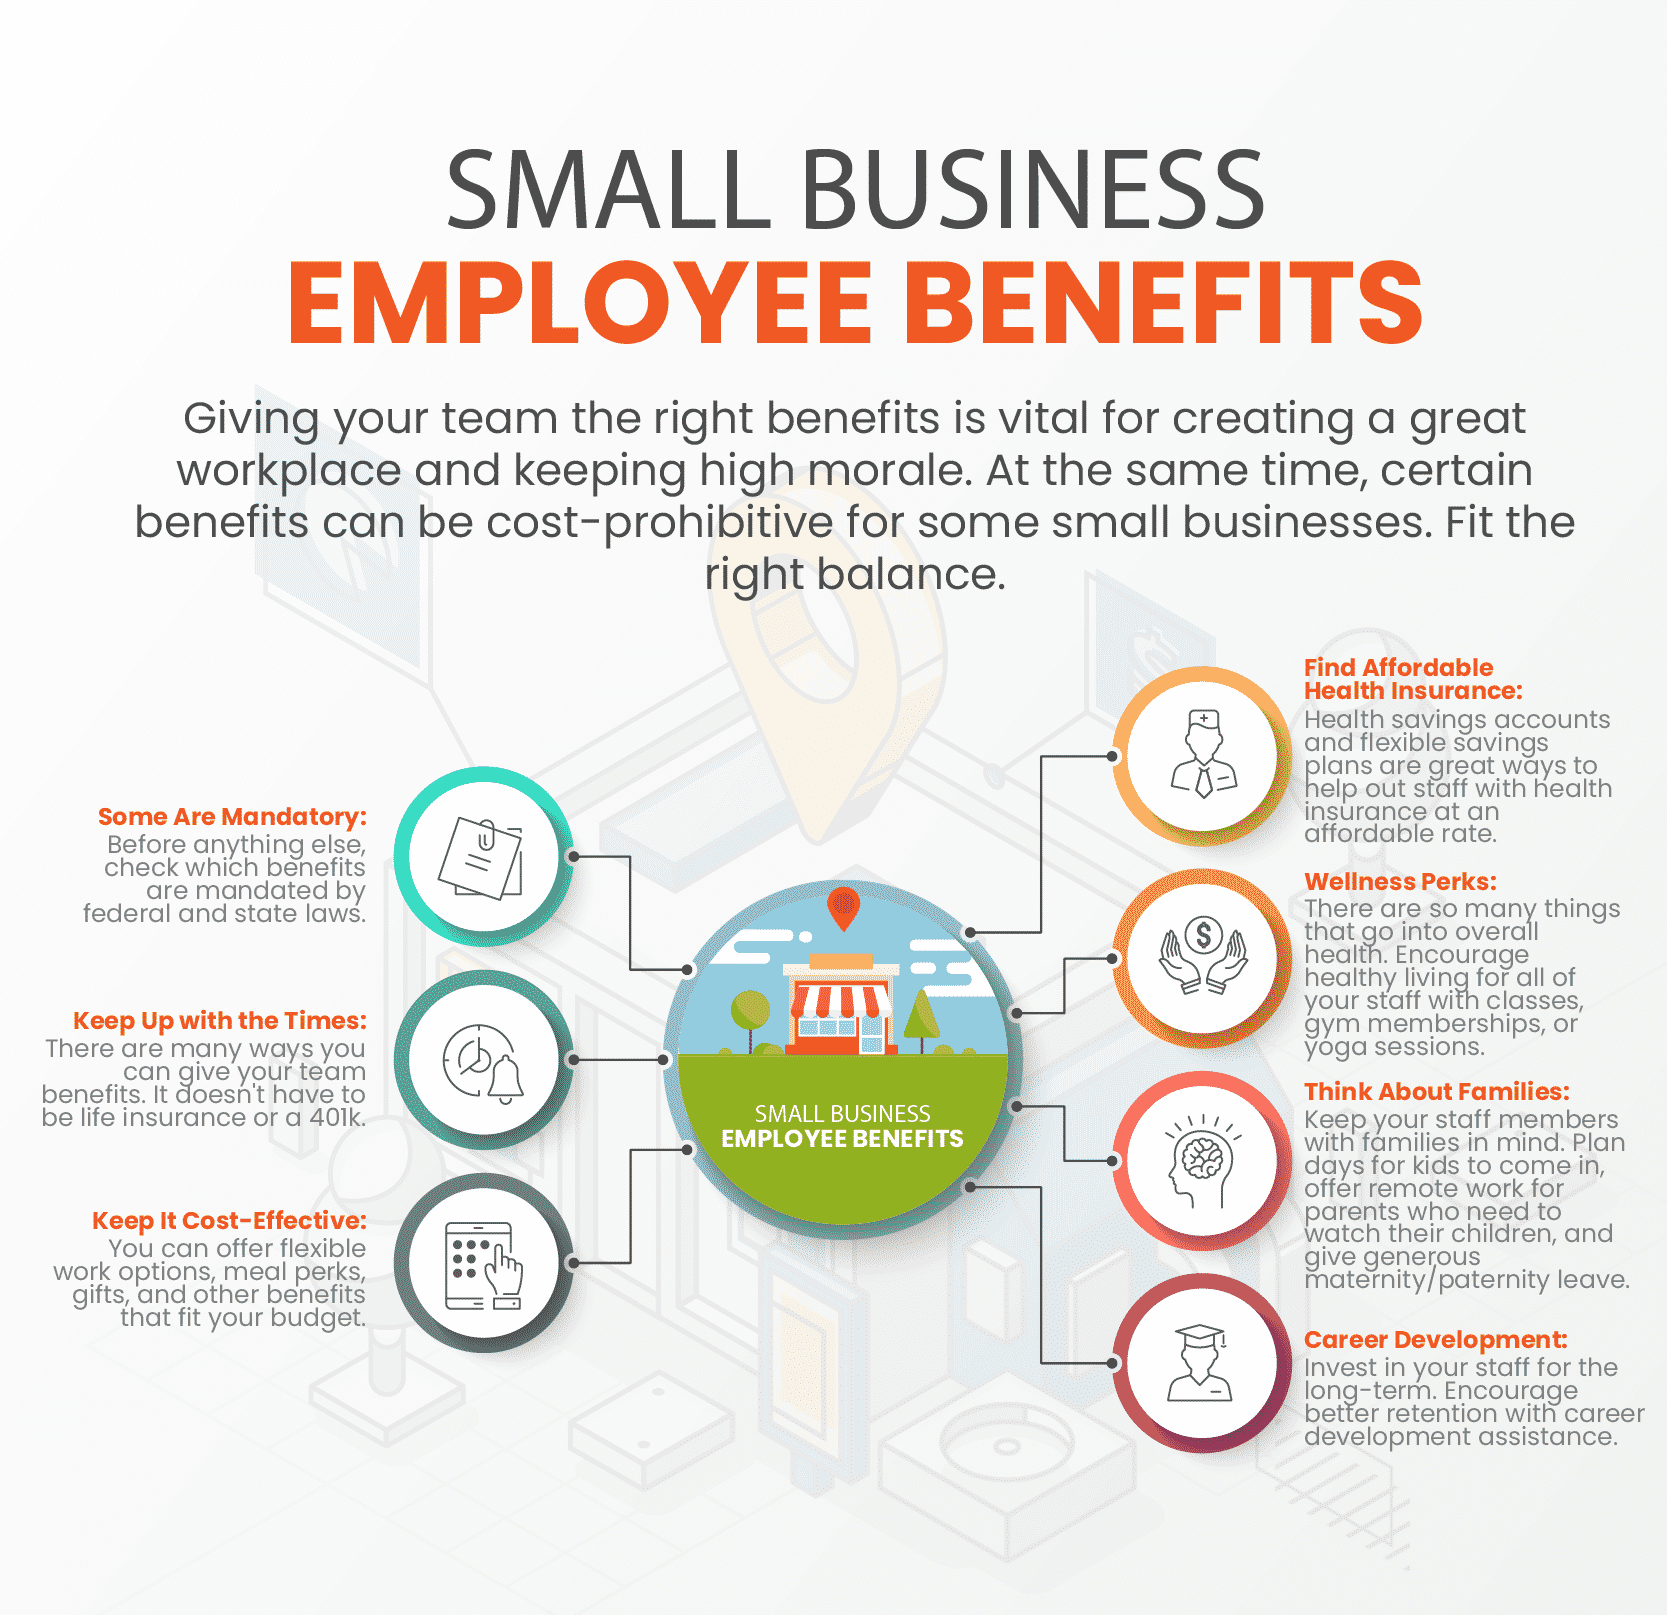 Small business employee benefits at an affordable cost infographic